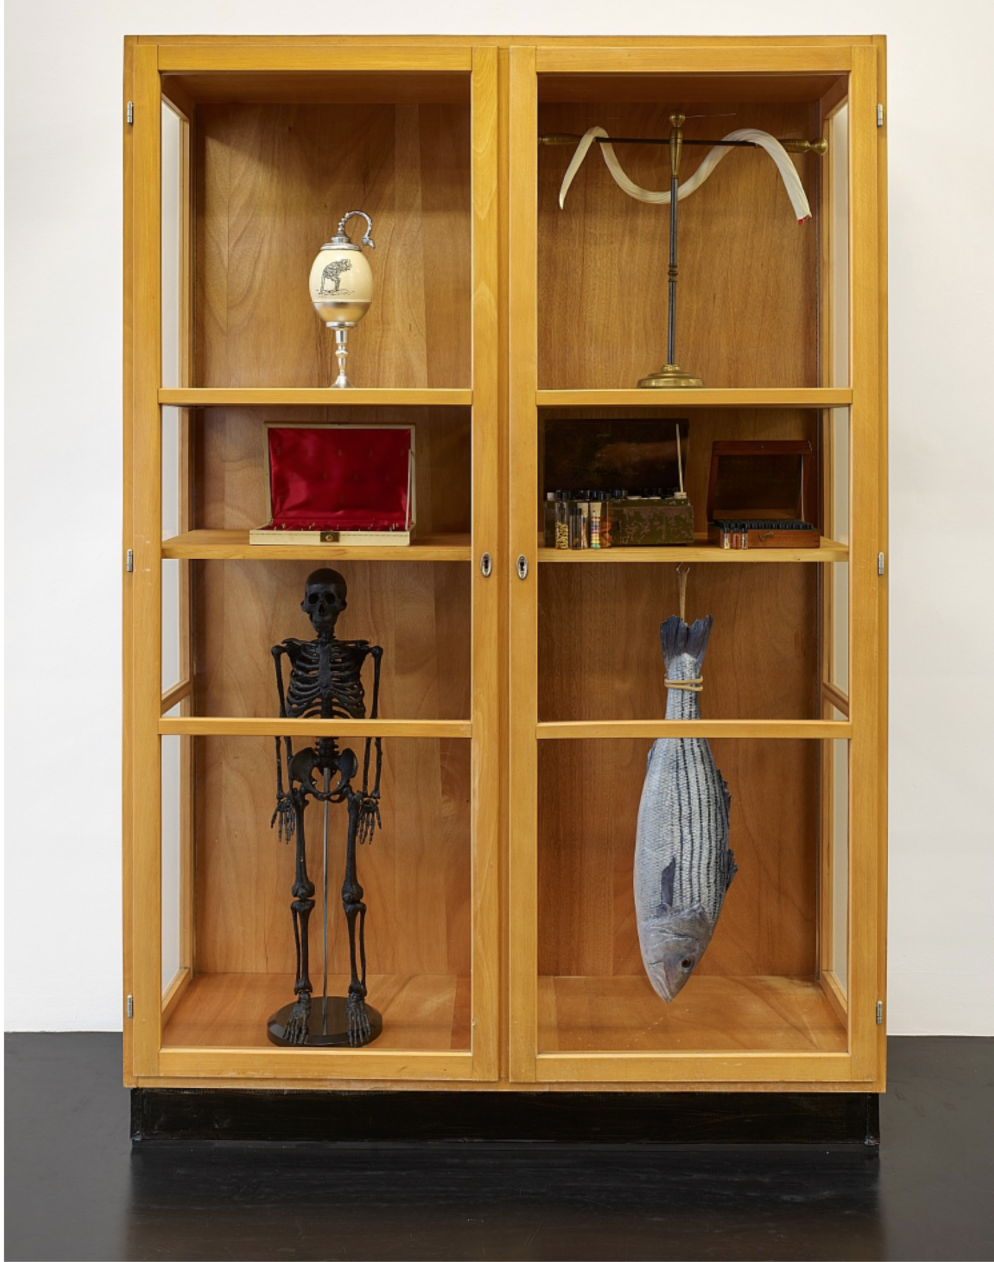 Mark Dion, Cabinet of Marvels, 2019, Mixed media, 190h x 130w x 48d cm